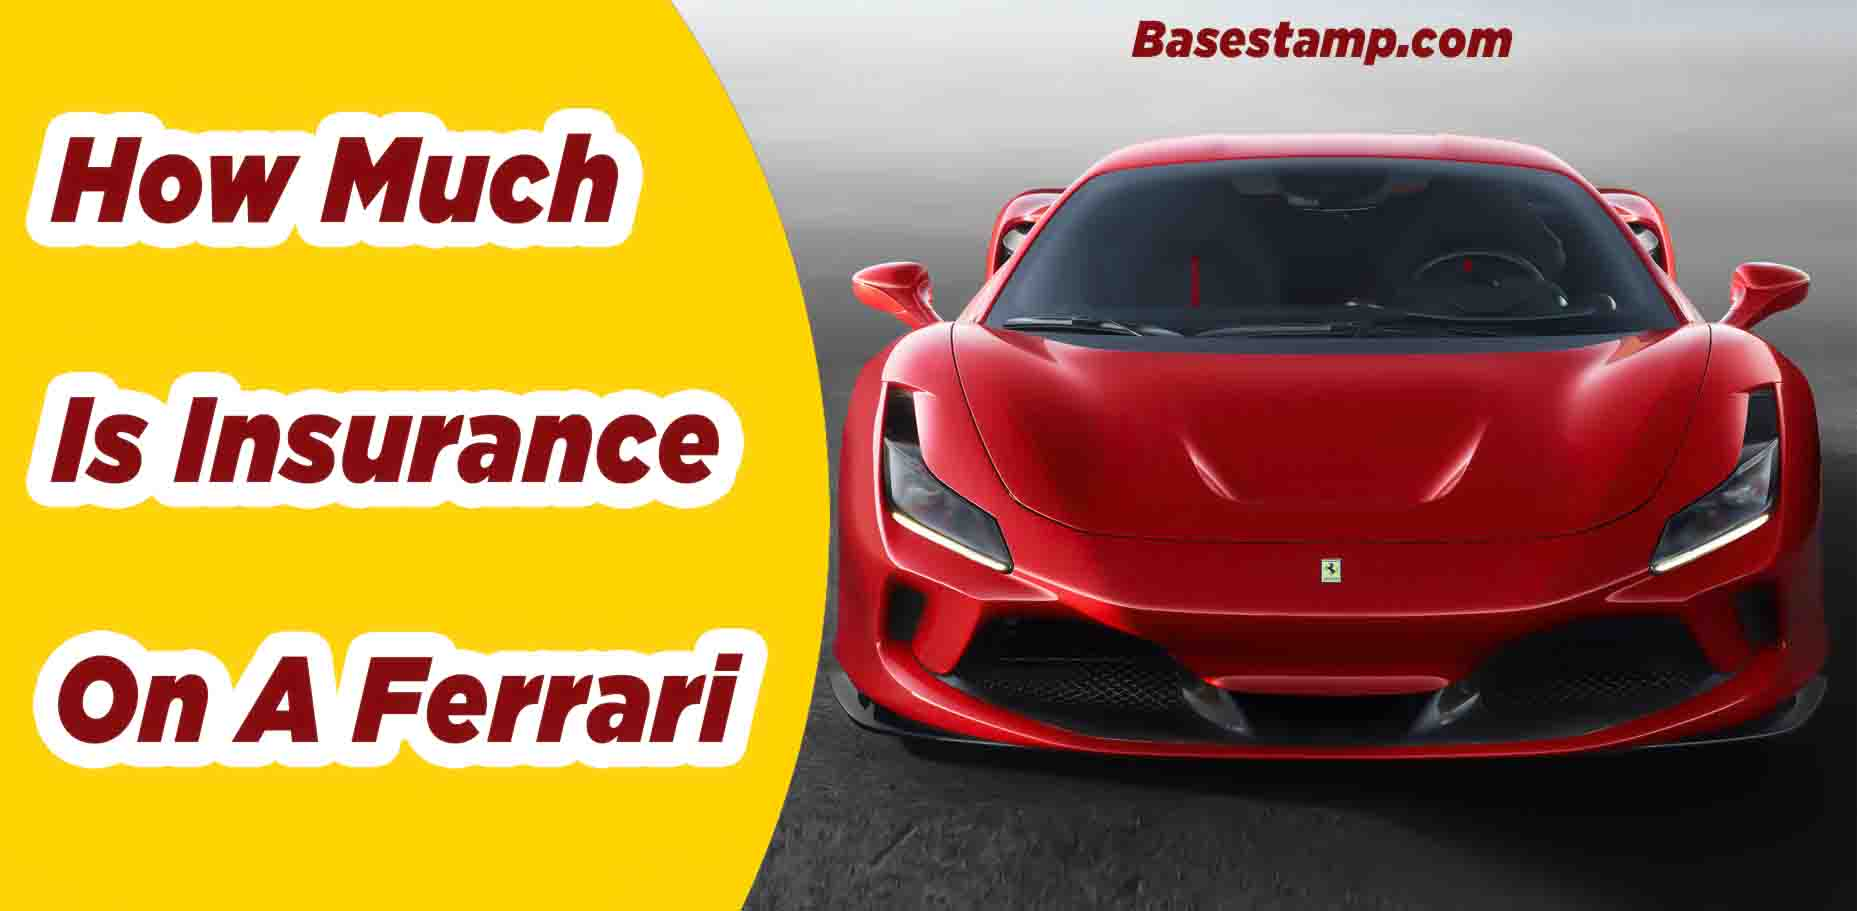 How Much Is Insurance On A Ferrari